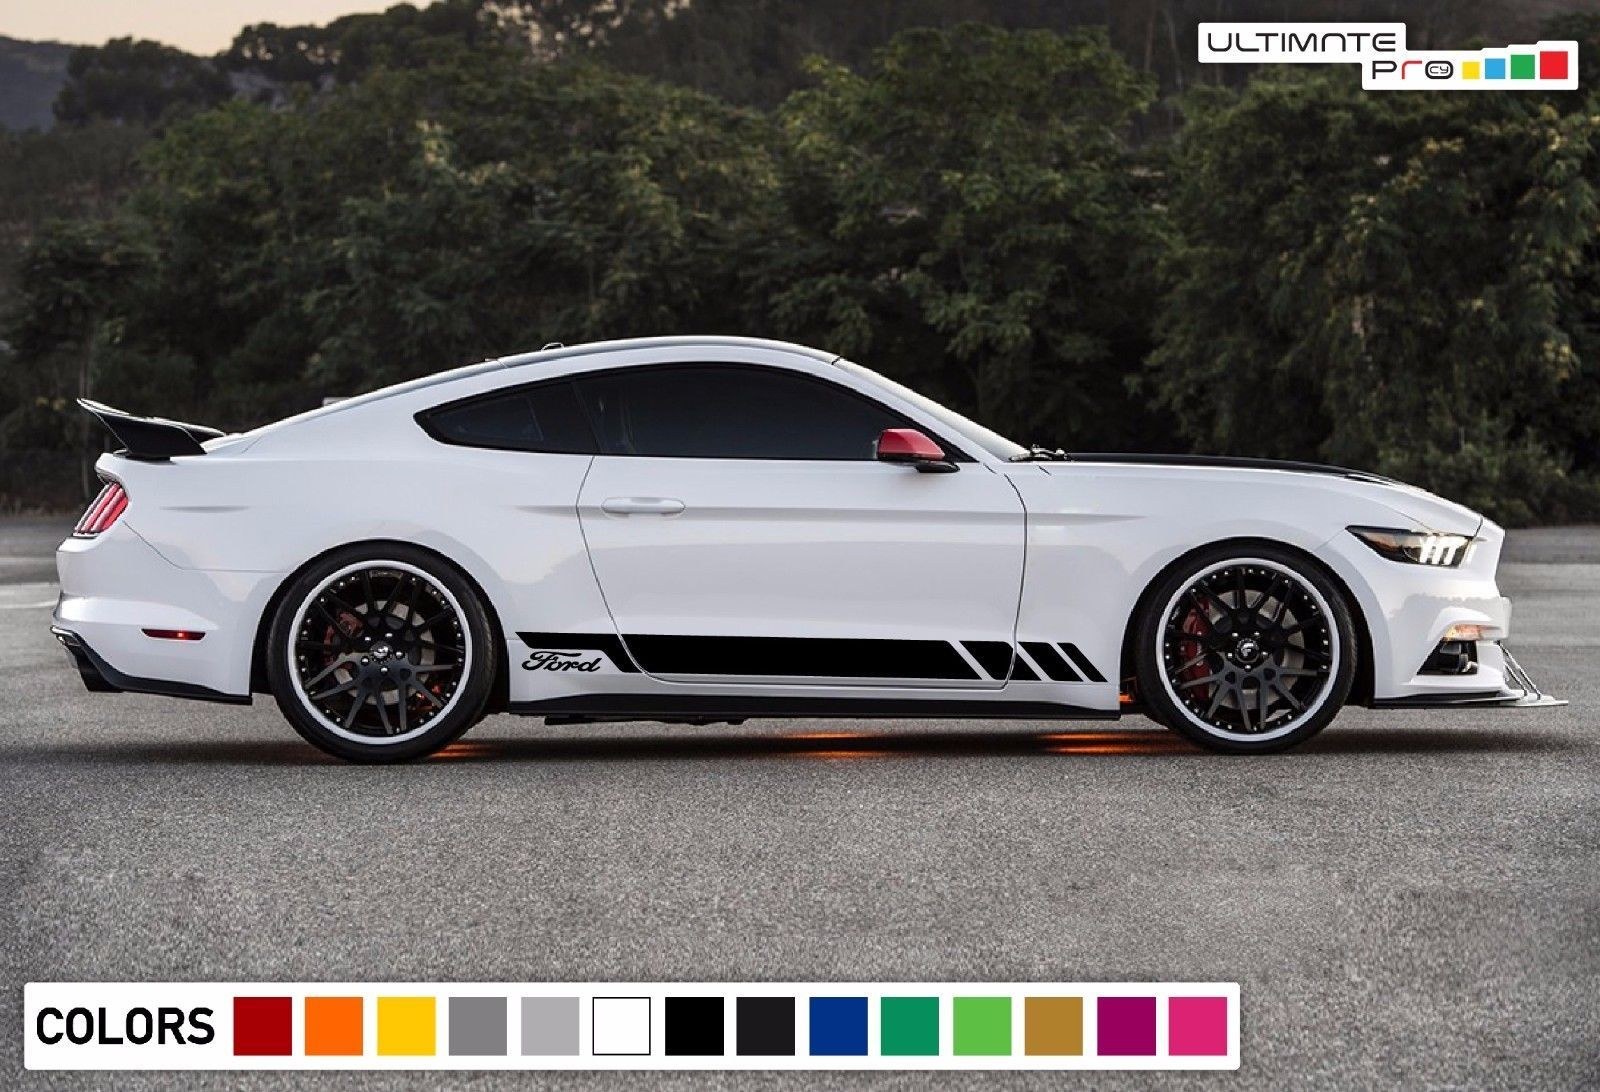 Sticker Decal Vinyl Side Door Stripes For Ford Mustang 2015 2018 Gt350r Louver Ebay Ford Mustang Ford Mustang Car 2015 Ford Mustang [ 1092 x 1600 Pixel ]